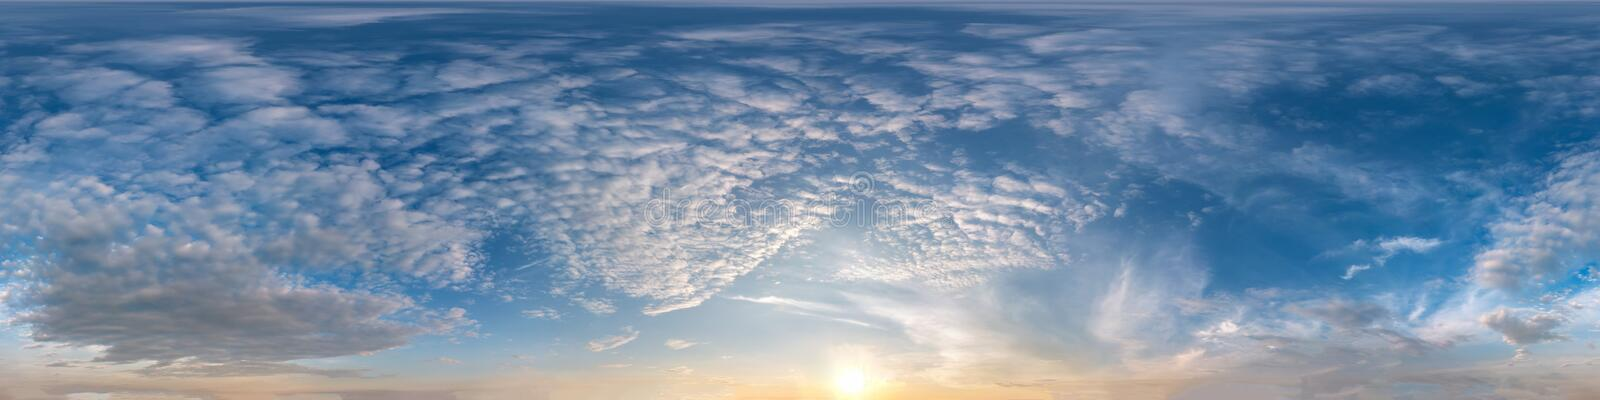 Seamless dark sky before sunset hdri panorama 360 degrees angle view with beautiful clouds for use in 3d graphics or game. Development as sky dome or edit drone stock photos